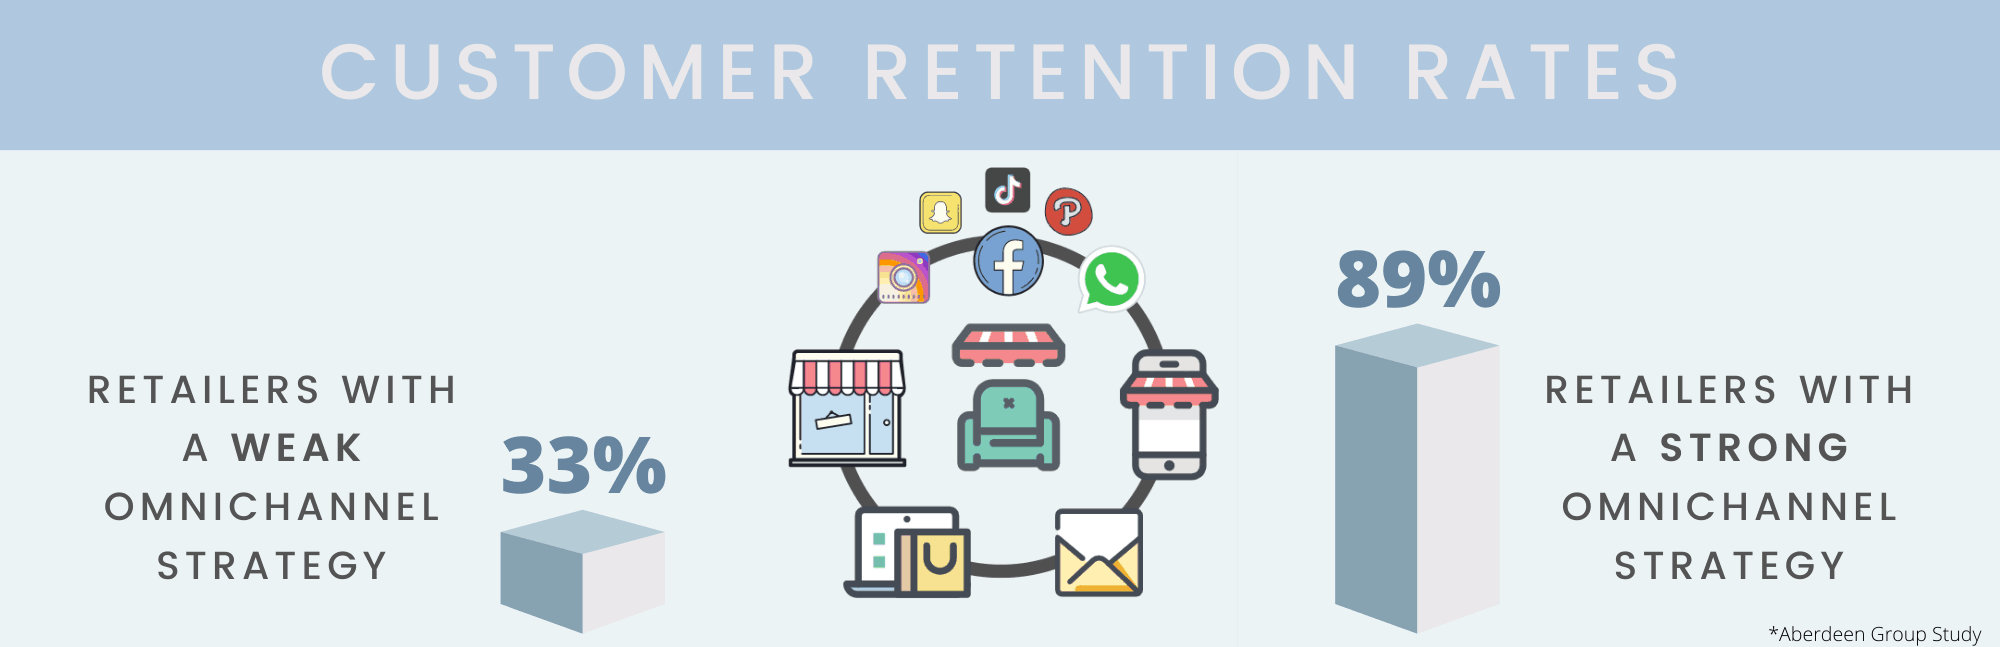 omnichannel retail retention